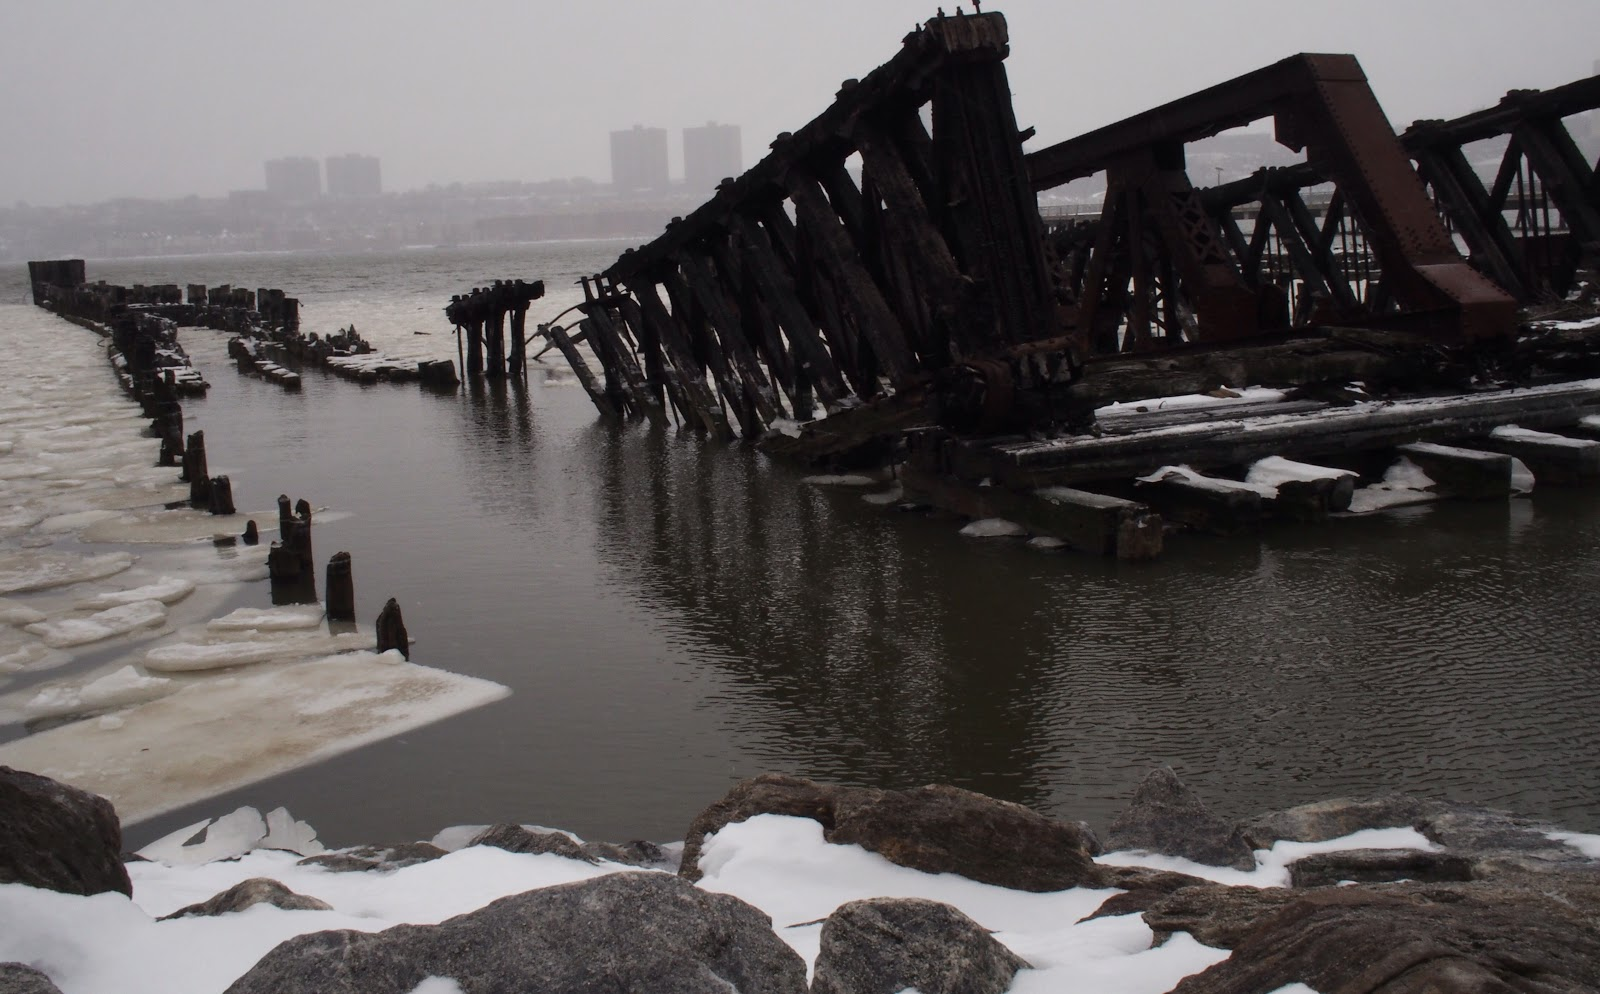 Hudson River Ice Floes :: Polar Vortex Redux #NYC #hudsonriver 2013